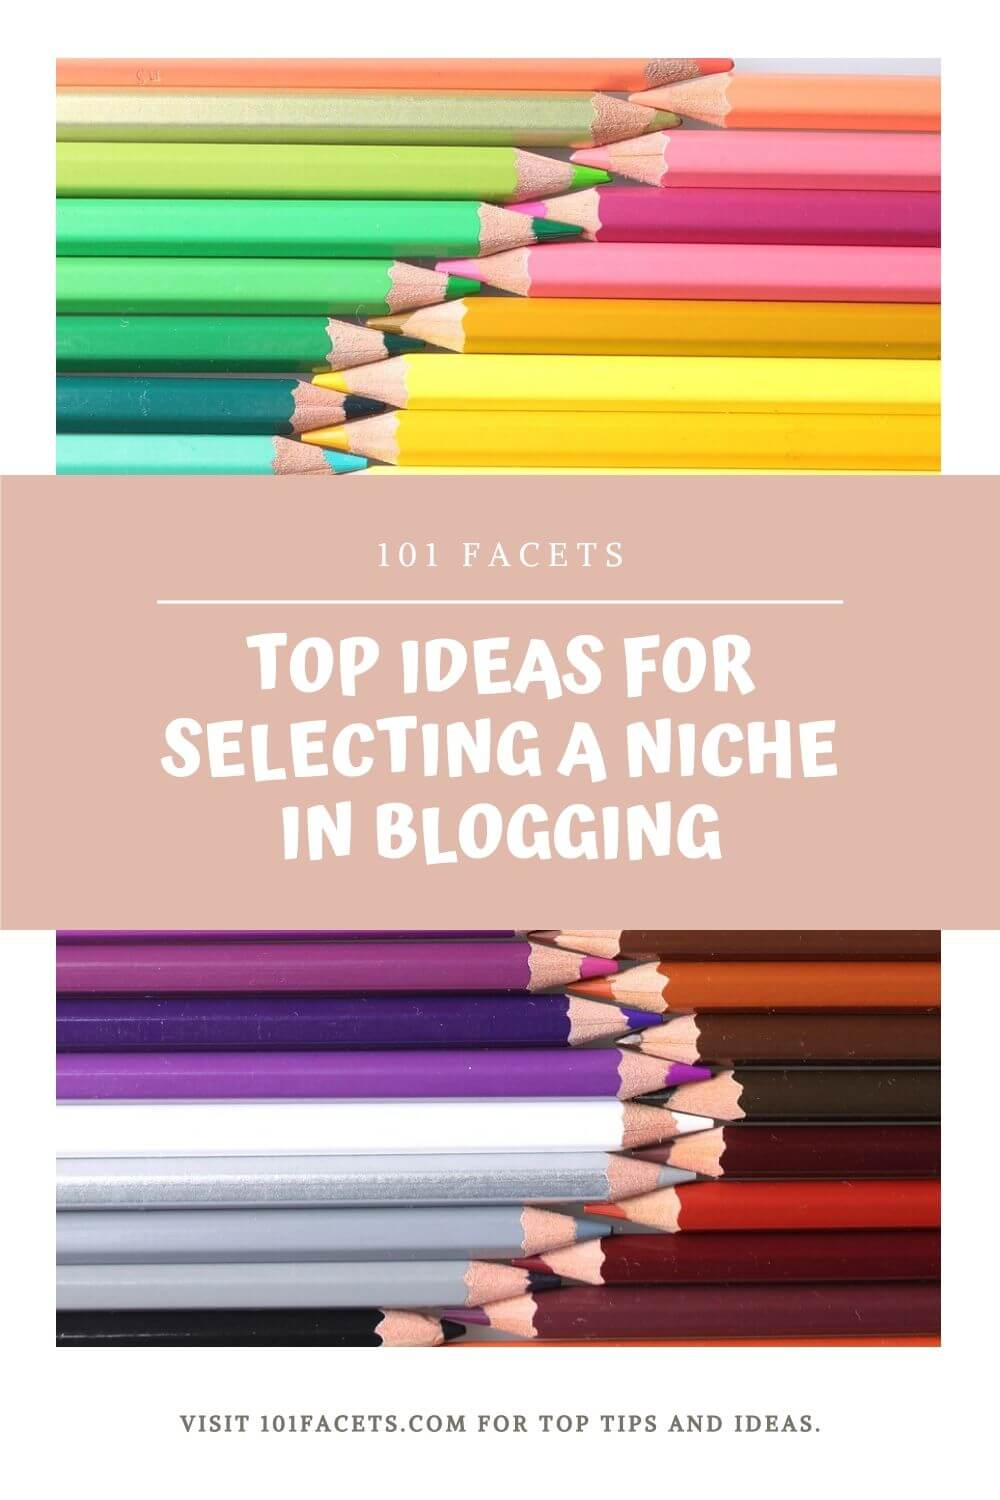 Top Ideas for Selecting a Niche in Blogging